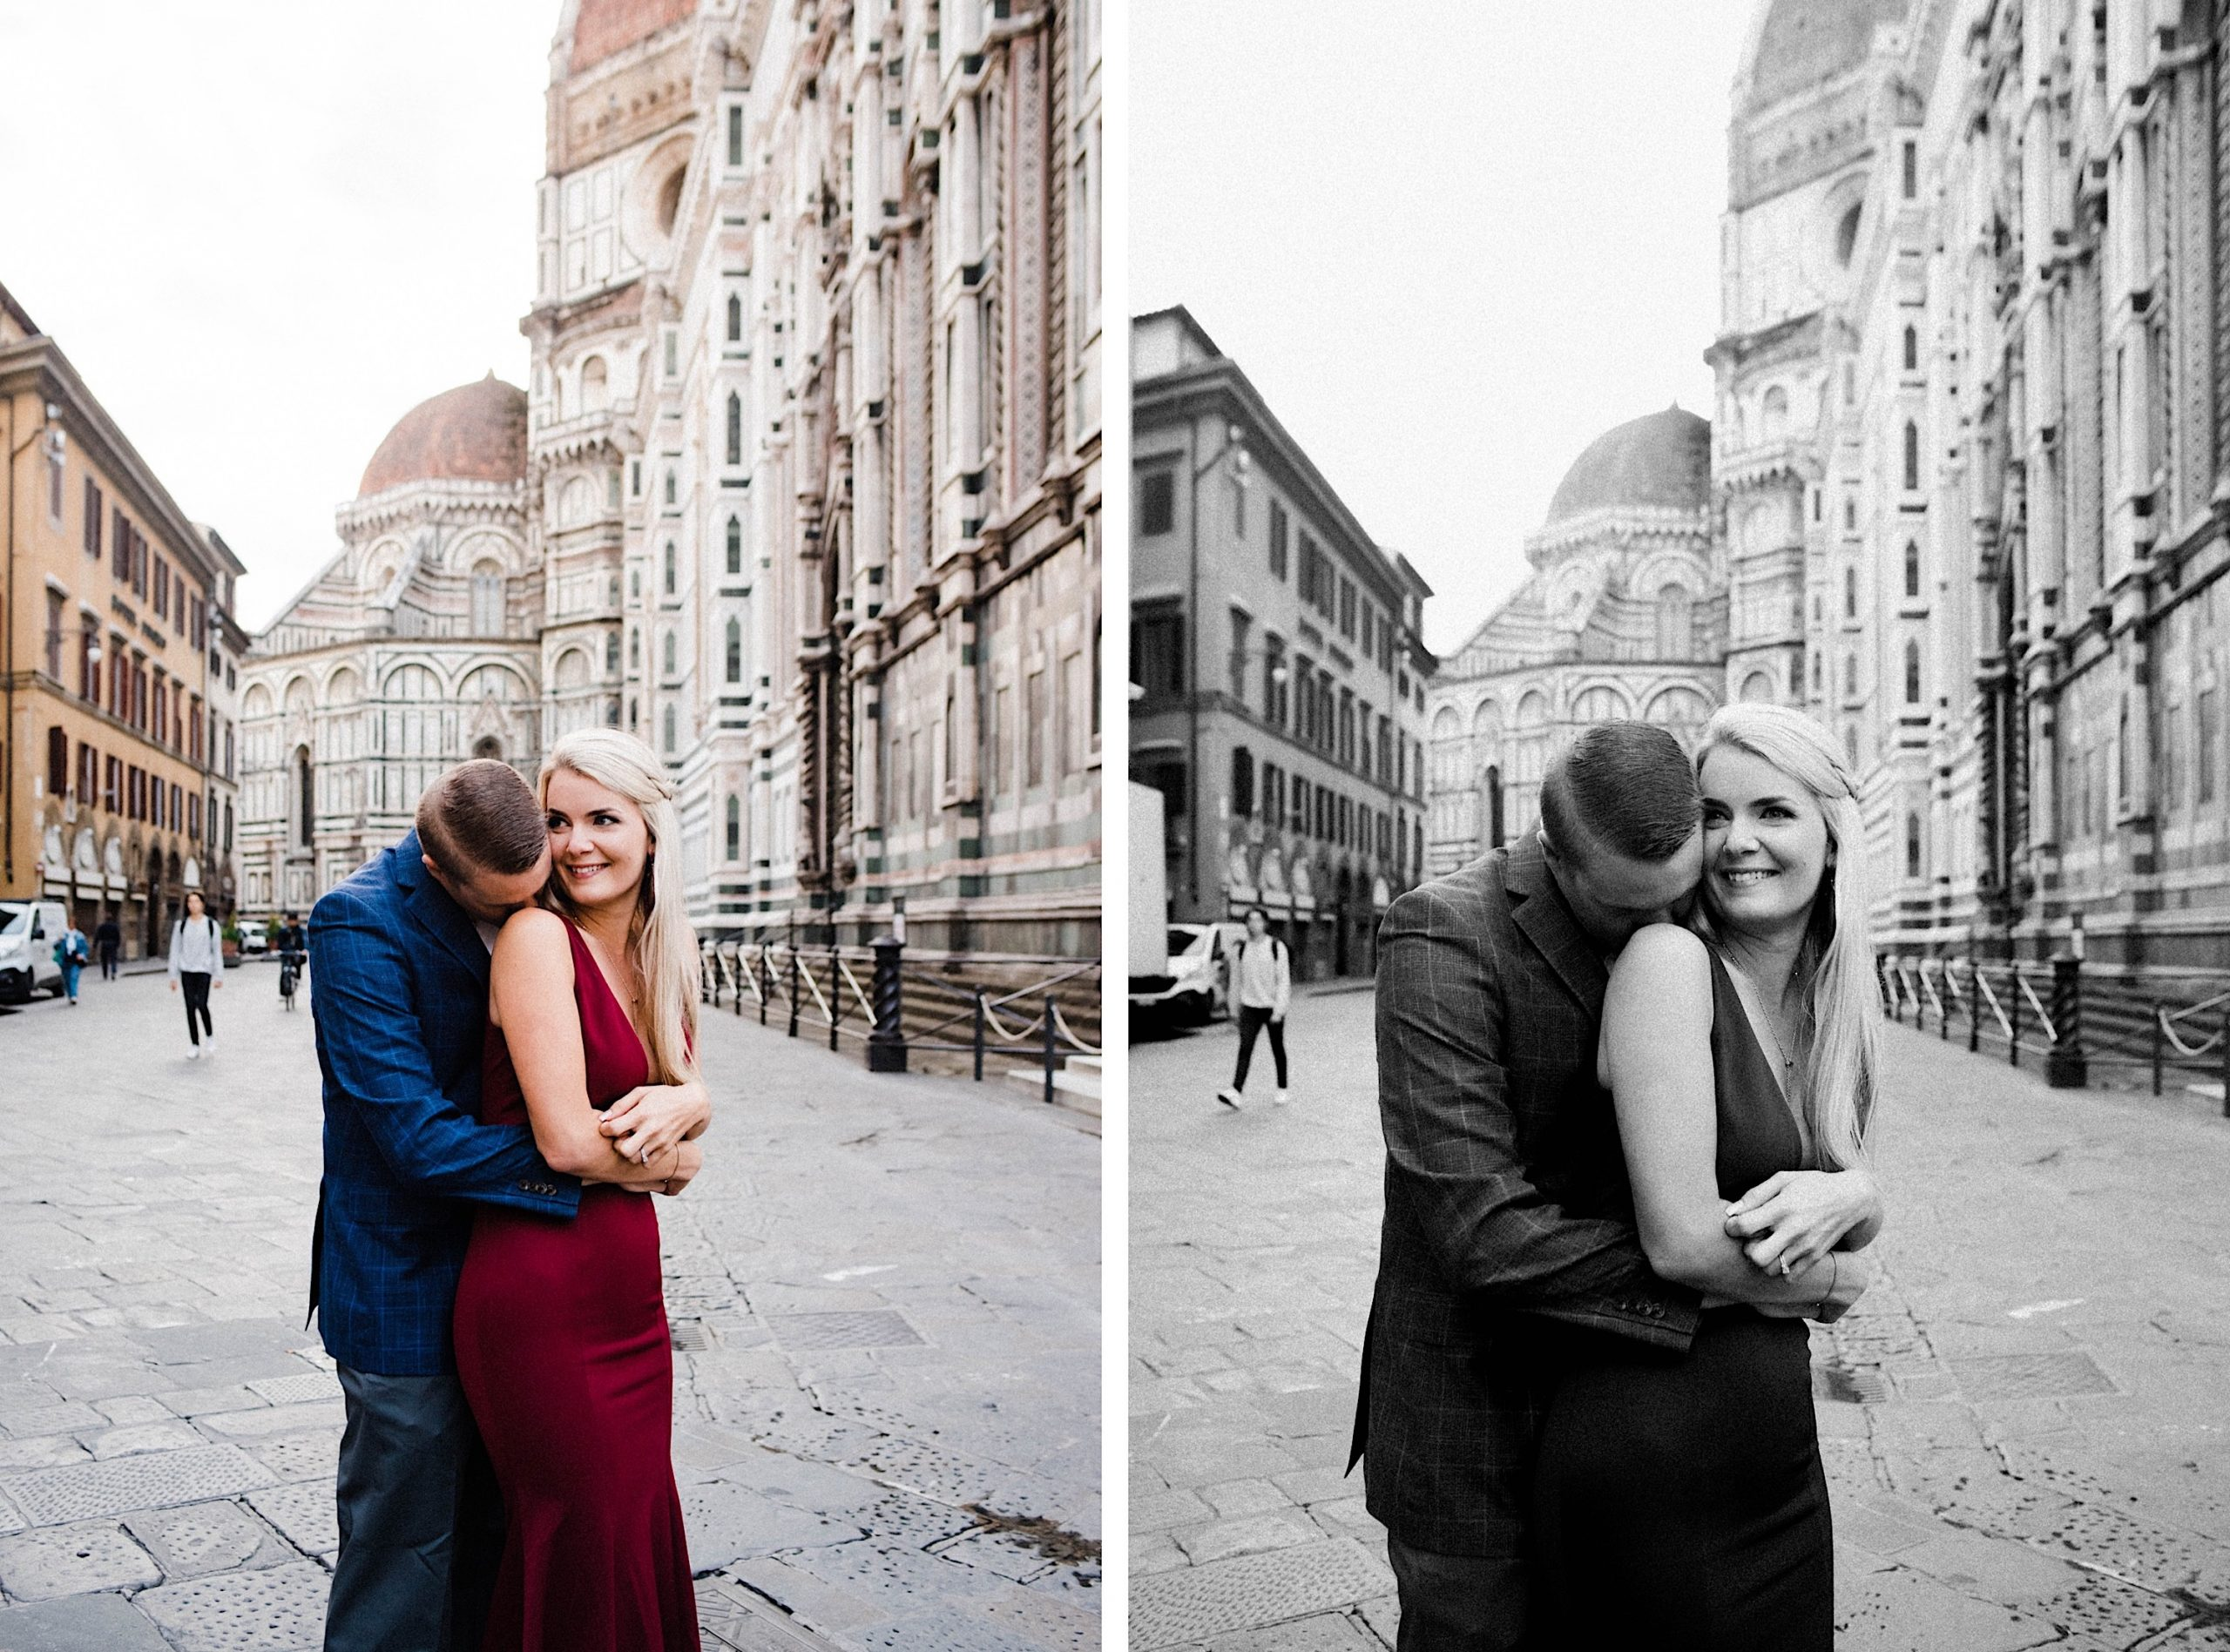 Side by side photos from an Anniversary Portrait Session in Florence, in front of the Duomo di Milano, of a couple embracing and laughing. The right photo is black & white.